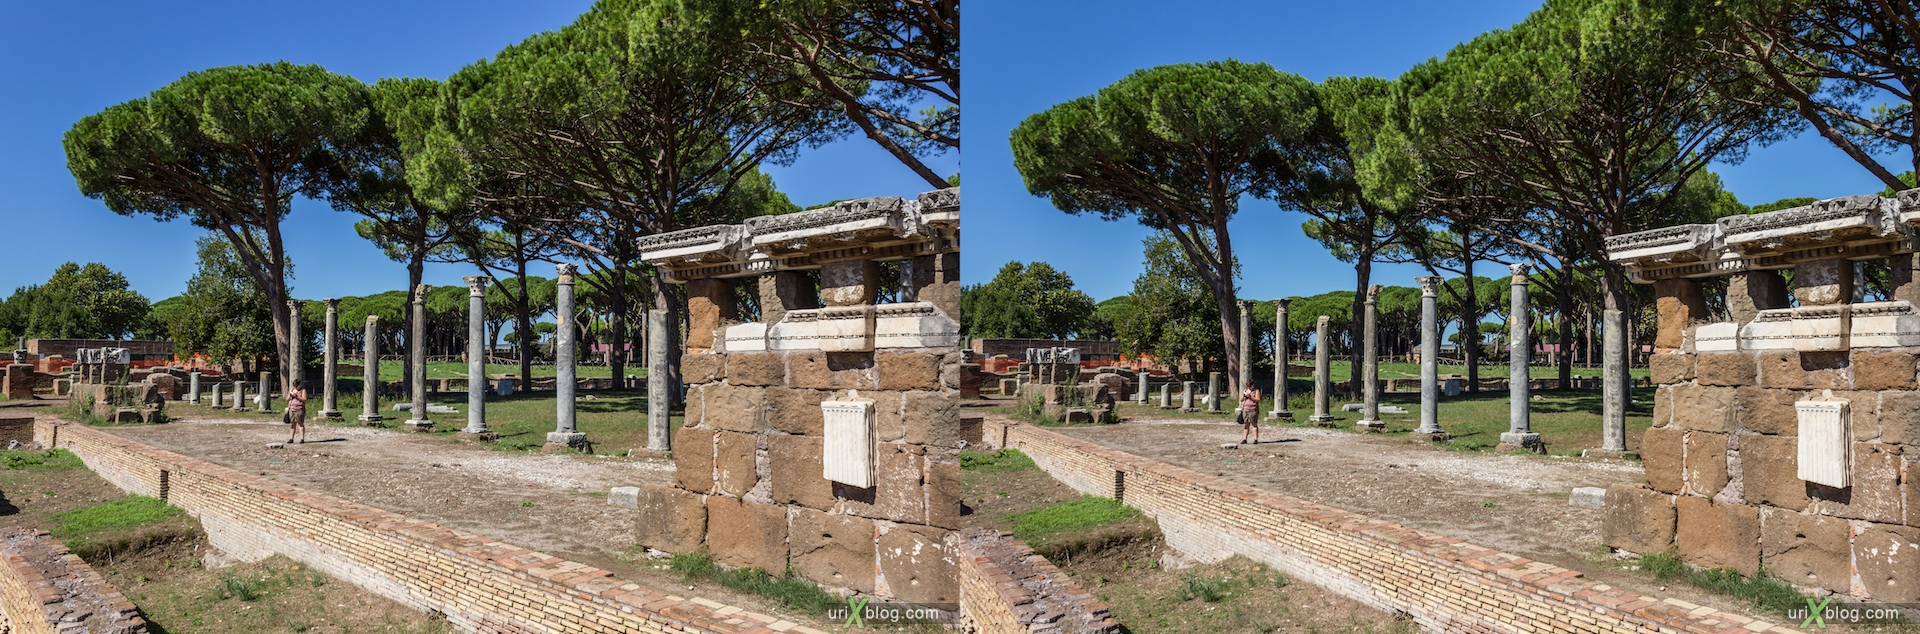 2012, Roman theater, Ostia Antica, Rome, Italy, ancient rome, city, 3D, stereo pair, cross-eyed, crossview, cross view stereo pair